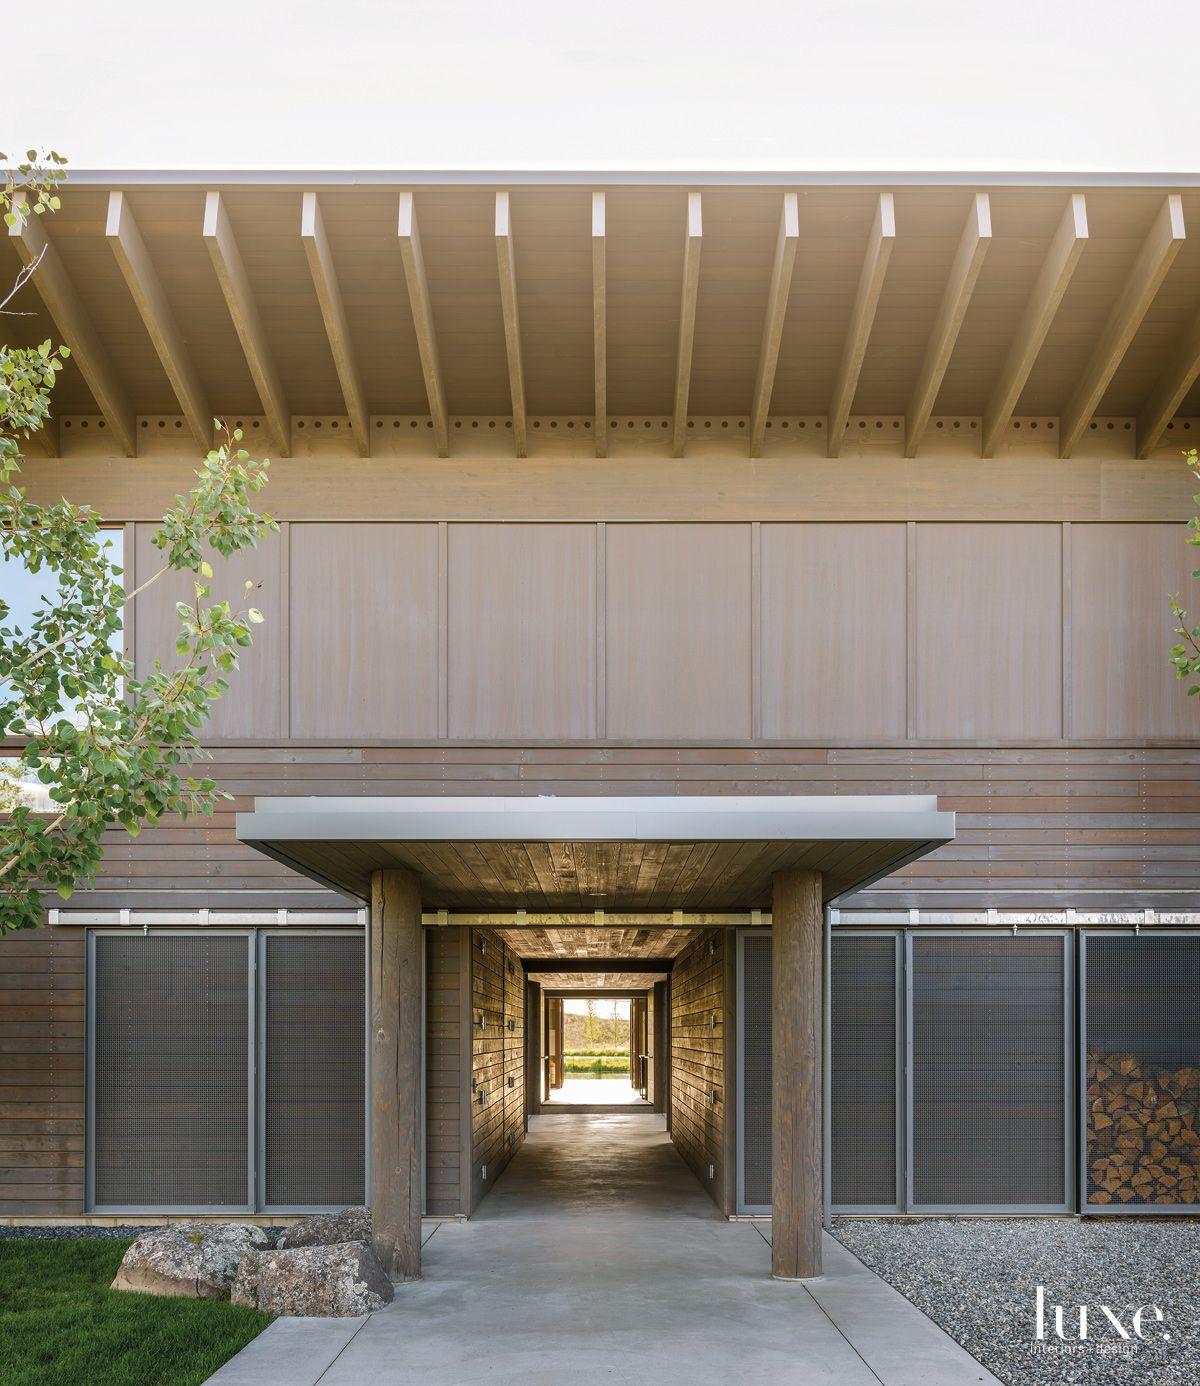 Stunning Entrance To a Modern Montana Home